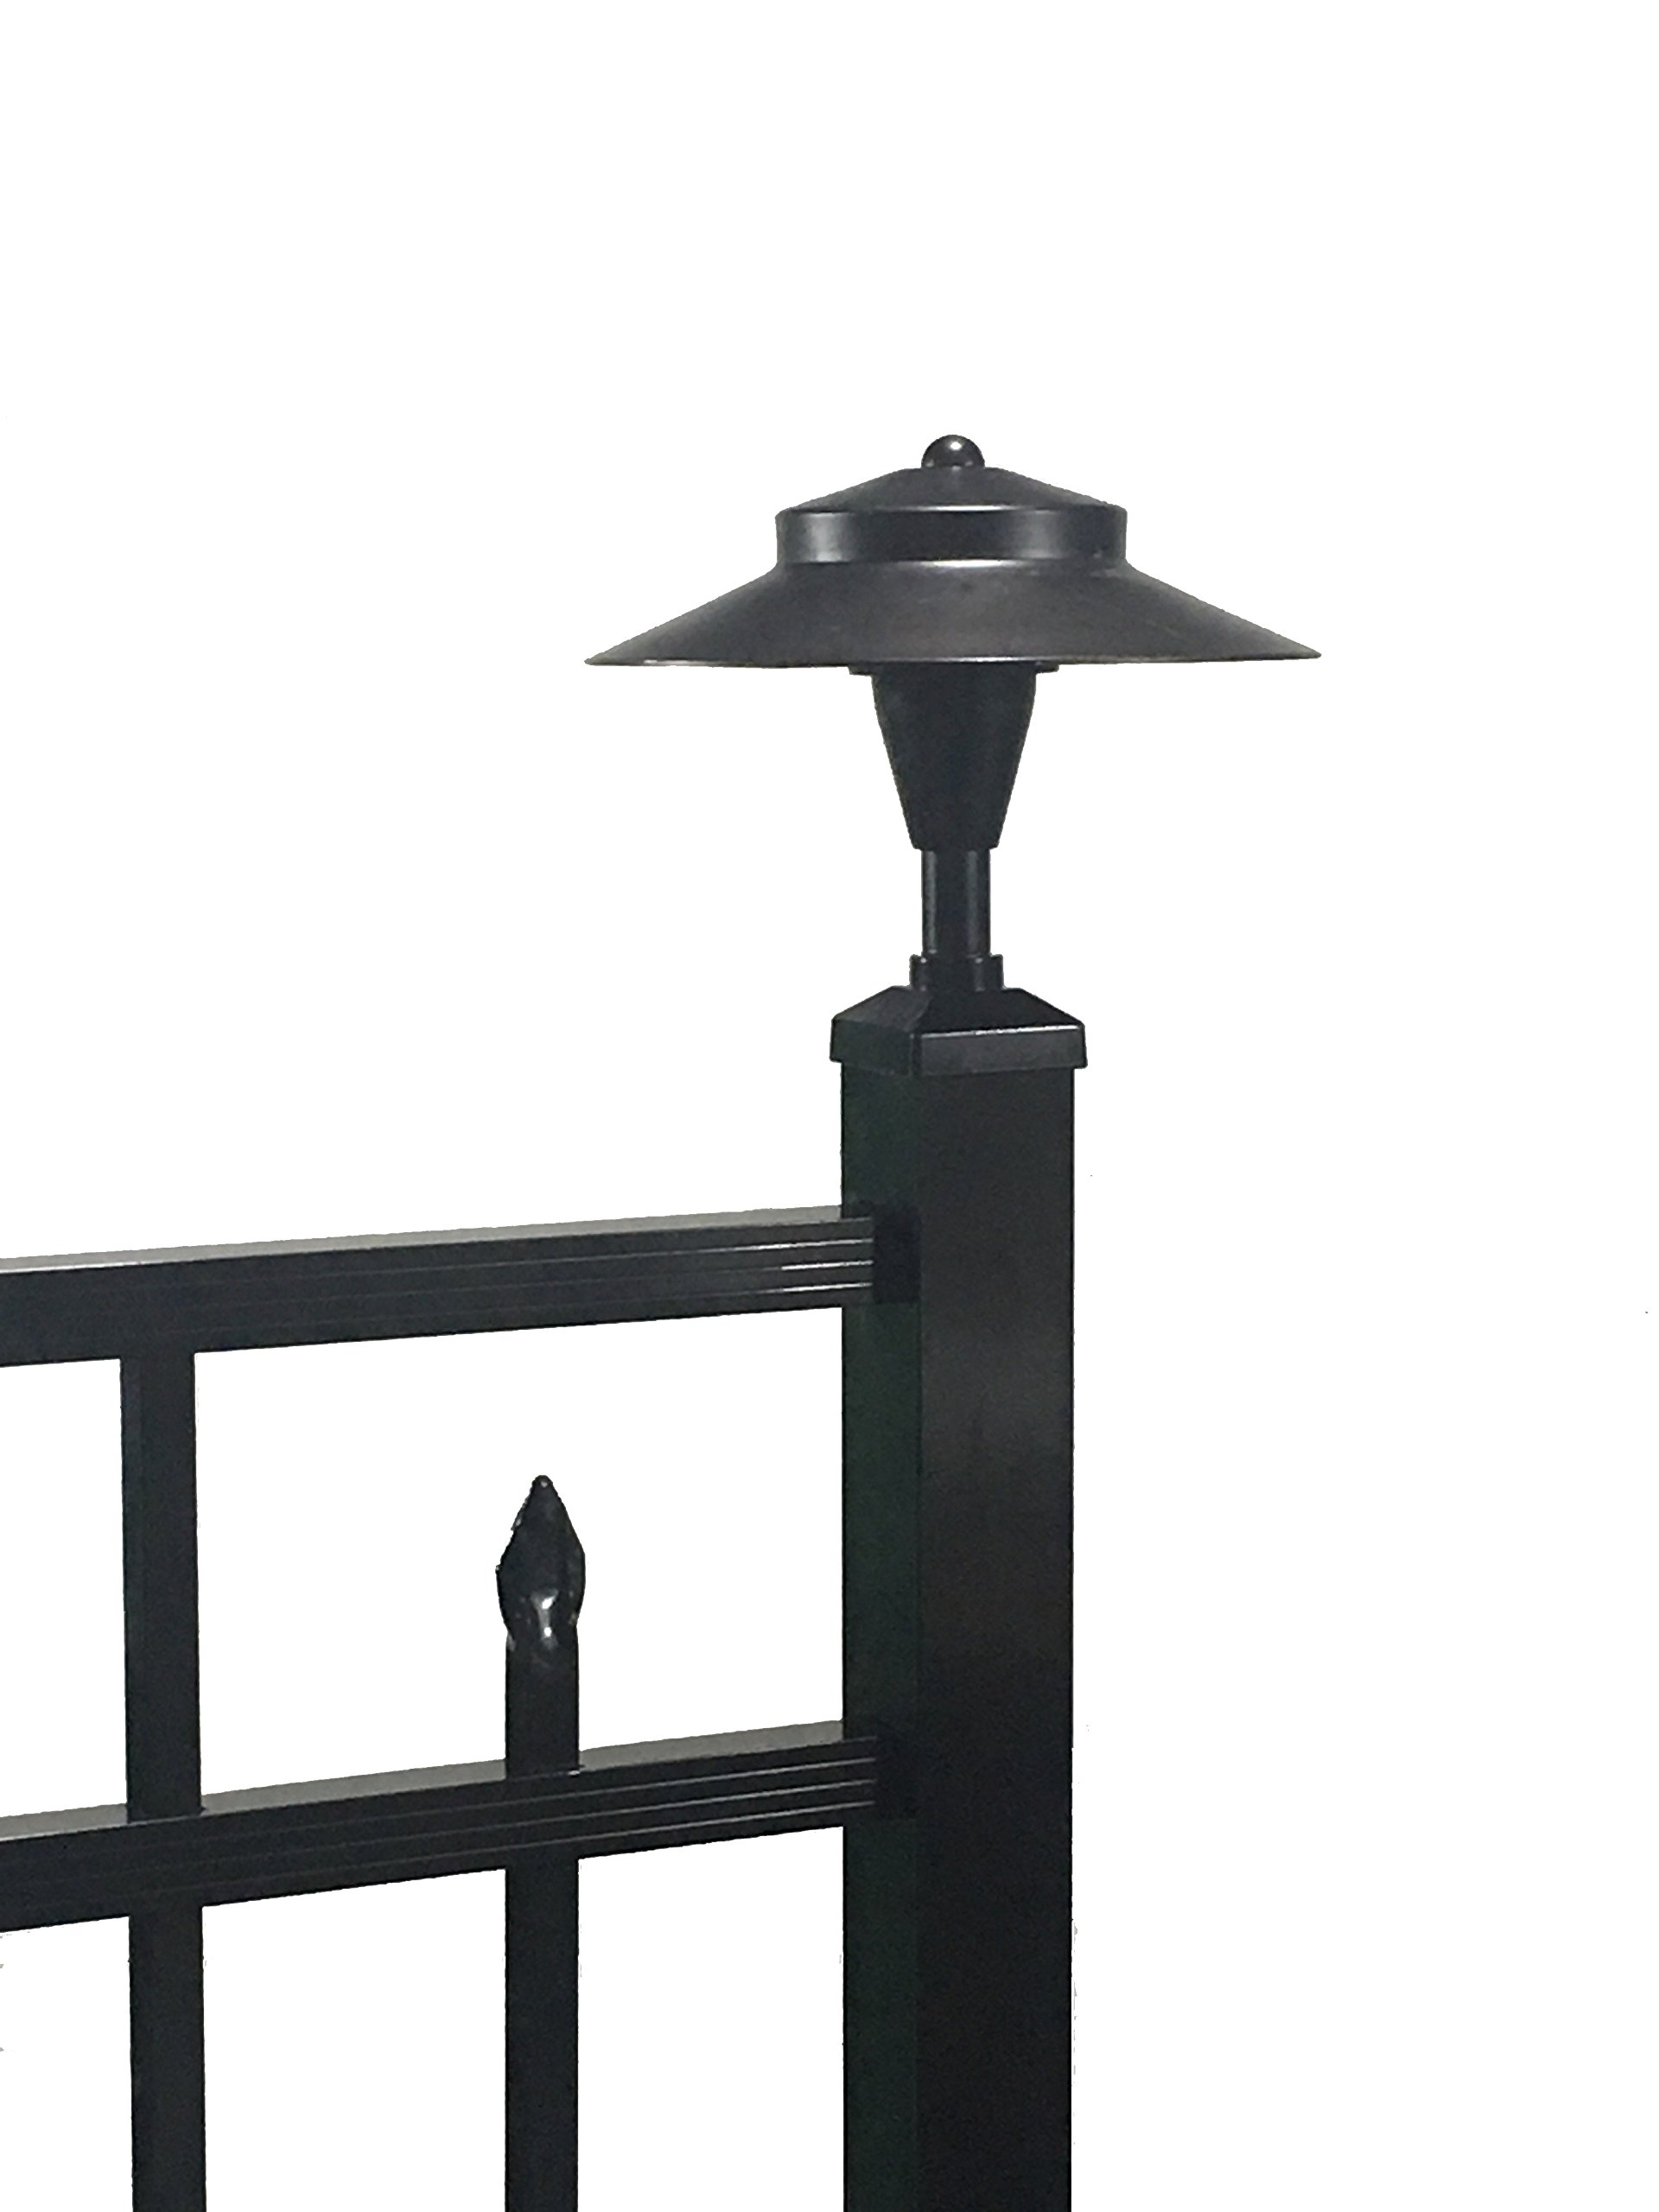 Tru-Post LED Light for Standard 2'' x 2'' Aluminum Railing or Fence Post by Tru-Post